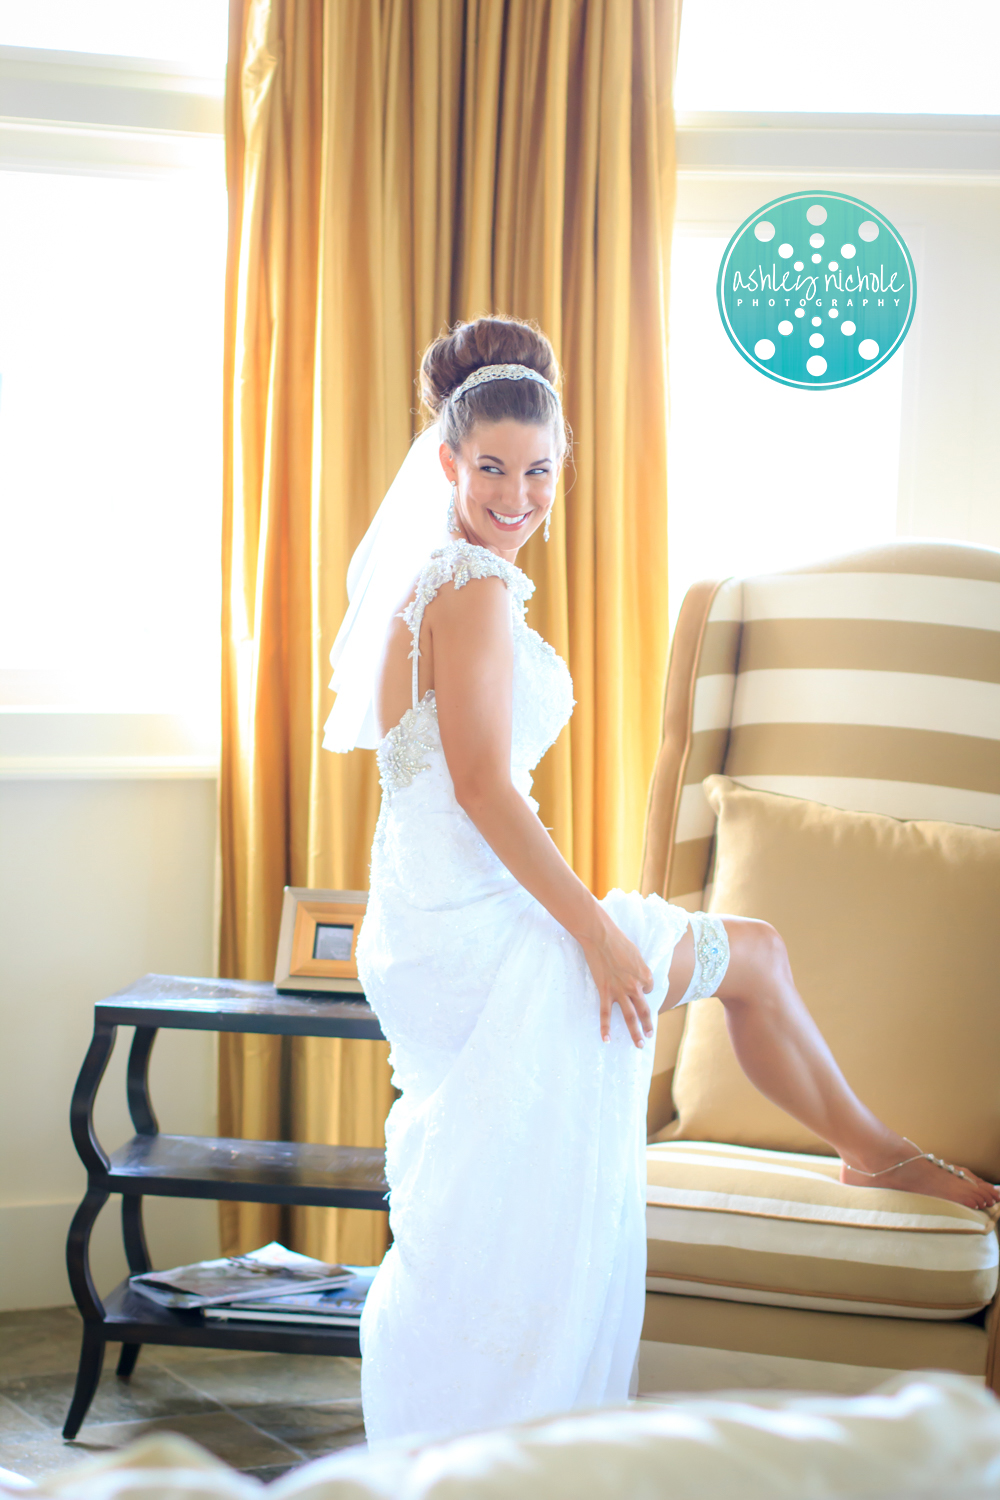 Ashley Nichole Photography- Weddings-41.jpg